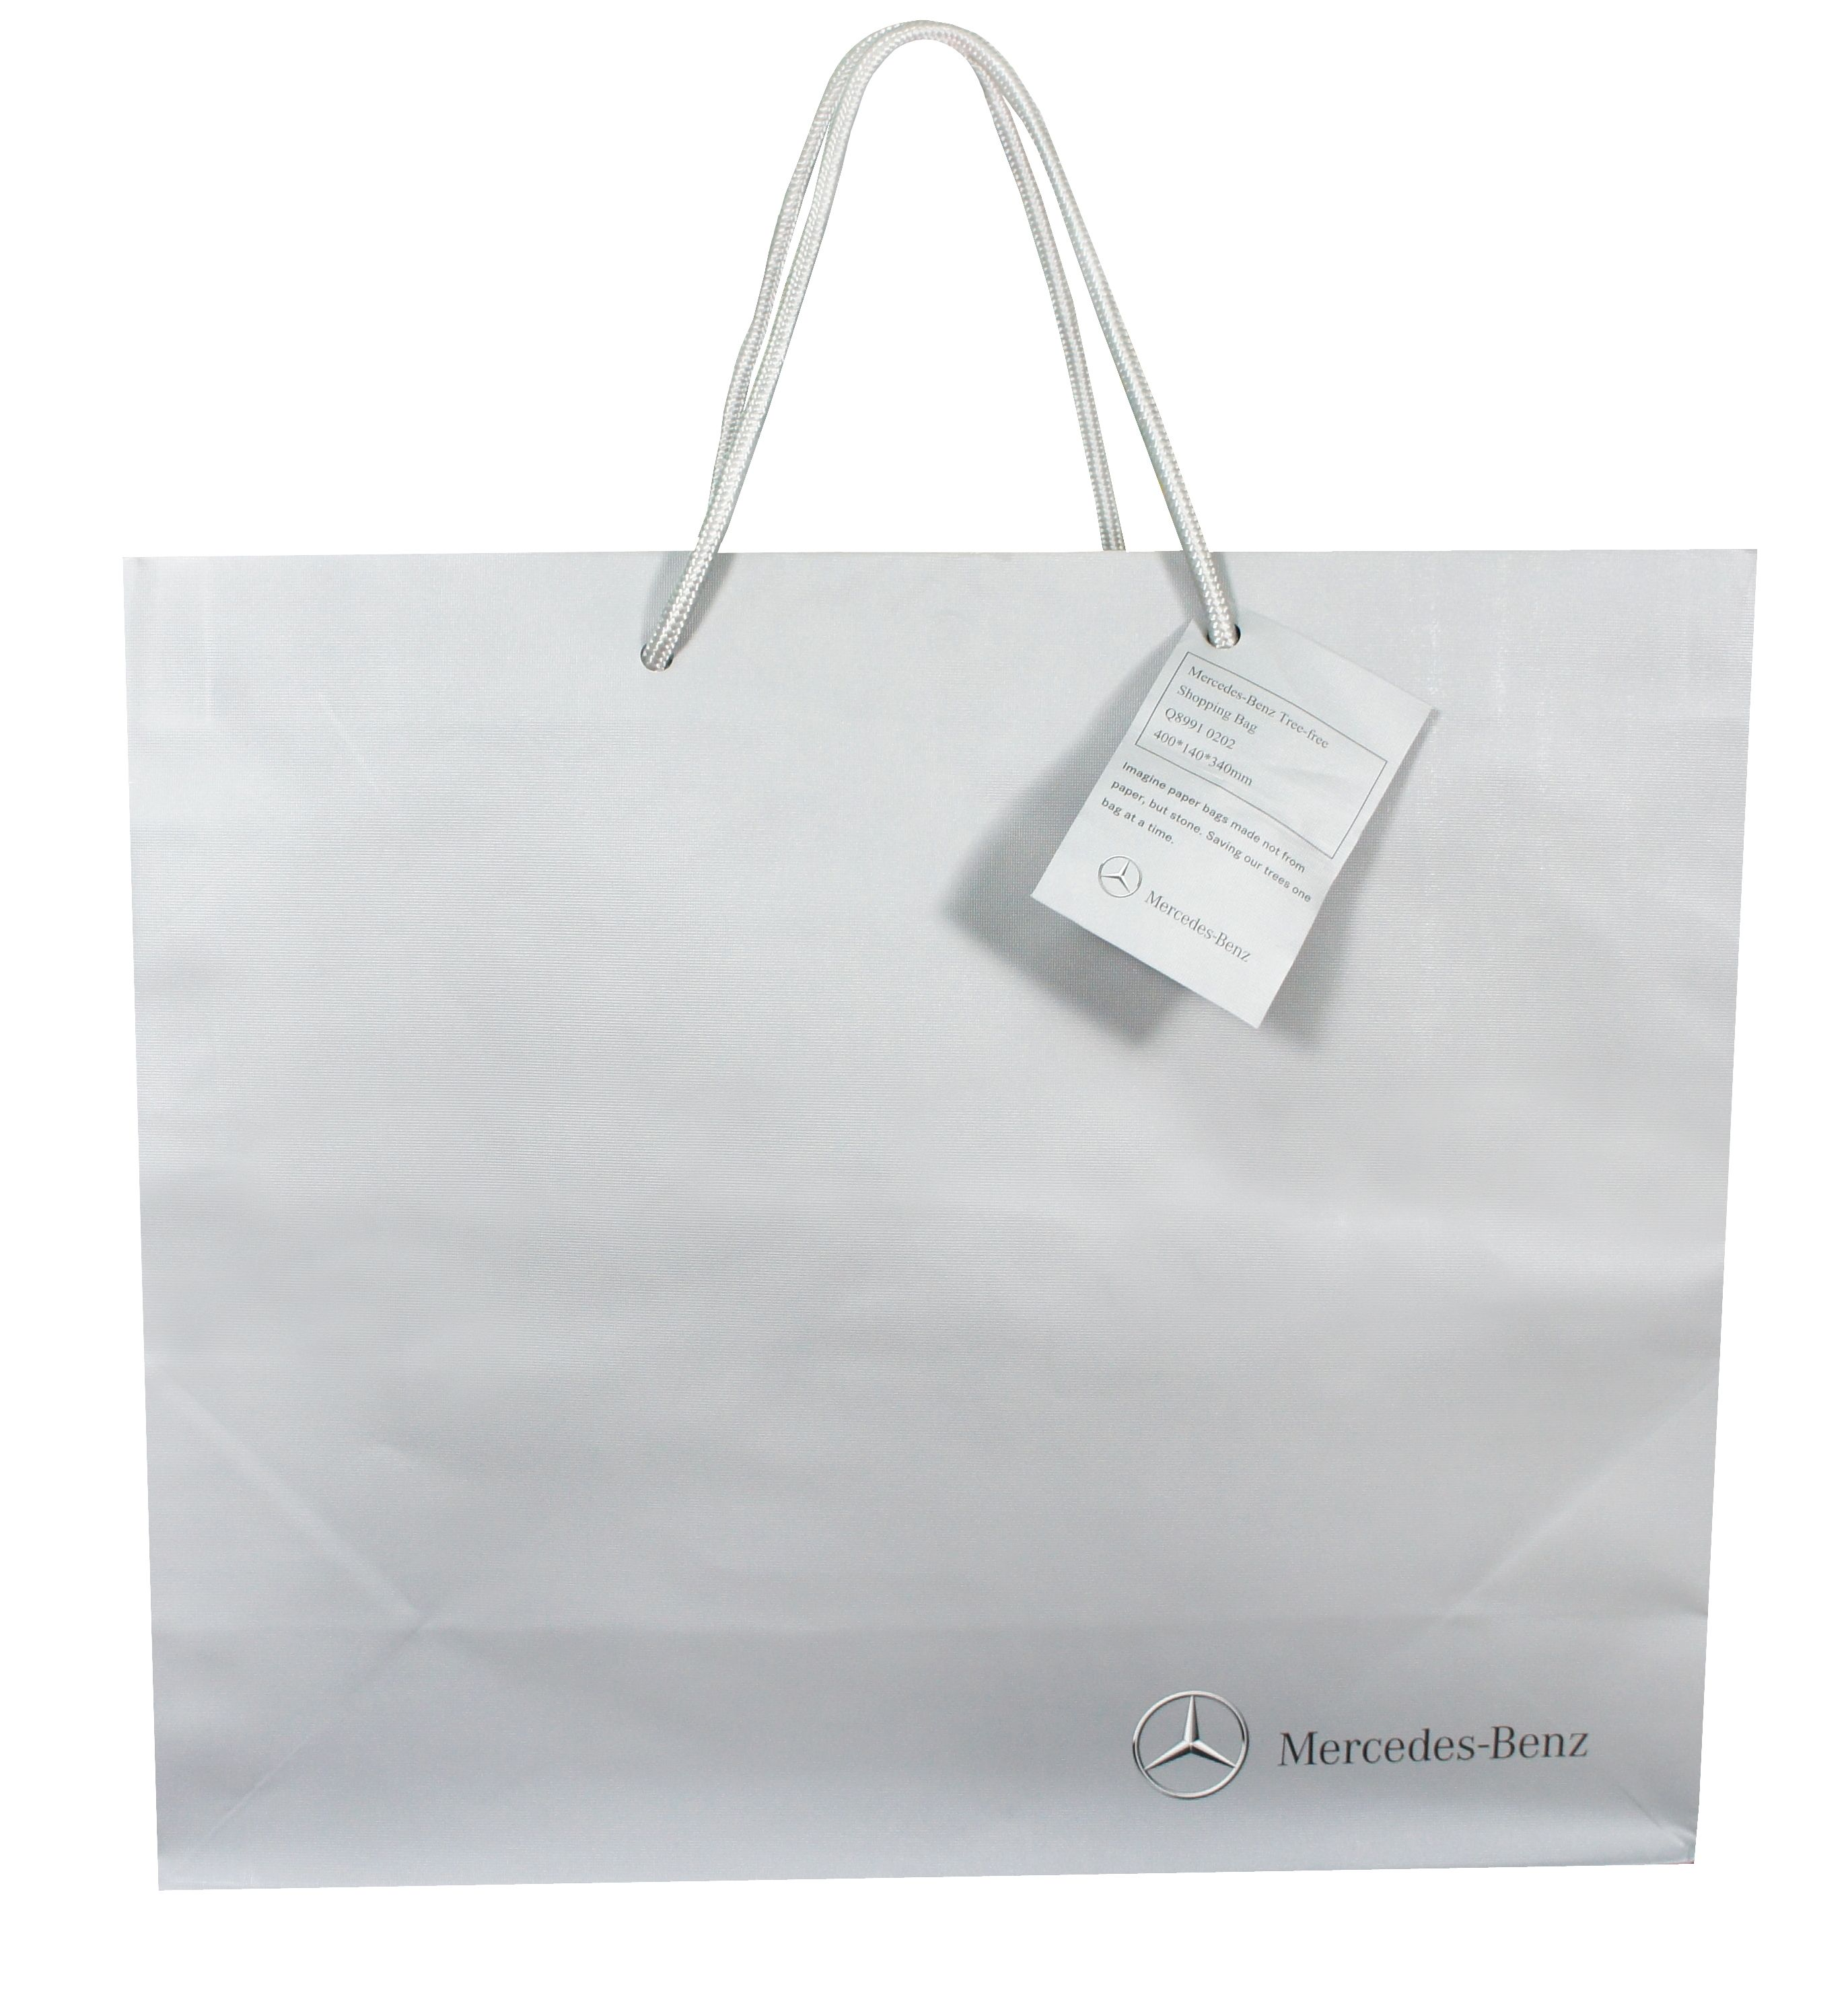 Gift bag from mercedes benz made from stone paper for Mercedes benz gifts